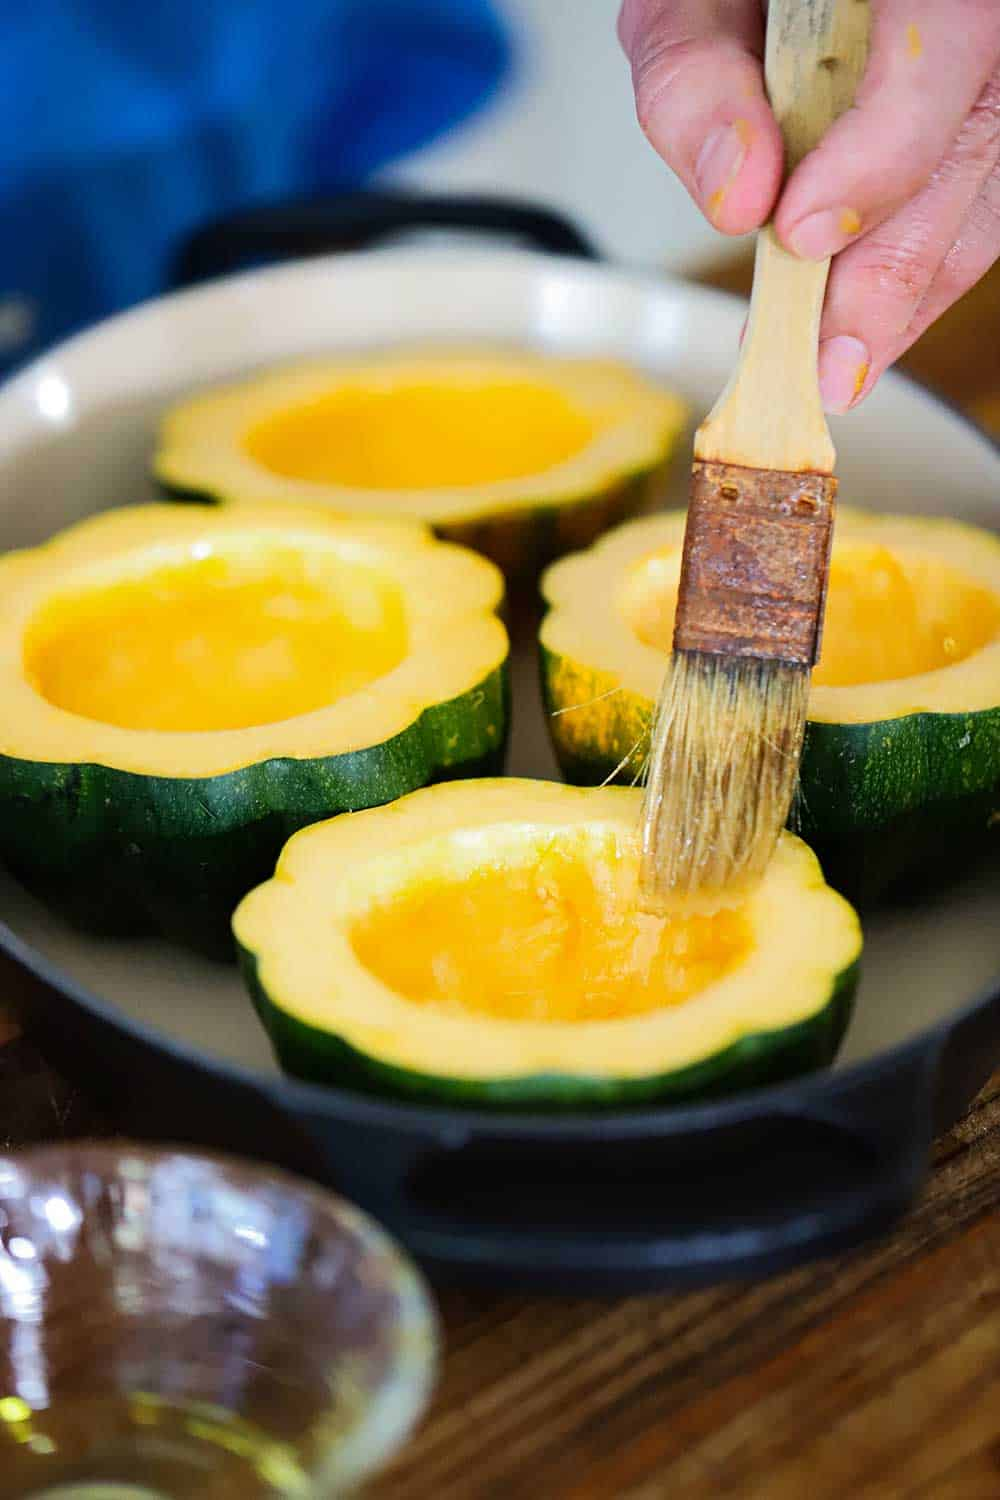 A hand brushing olive oil onto acorn squash that has been cut in half and sitting in a baking dish.